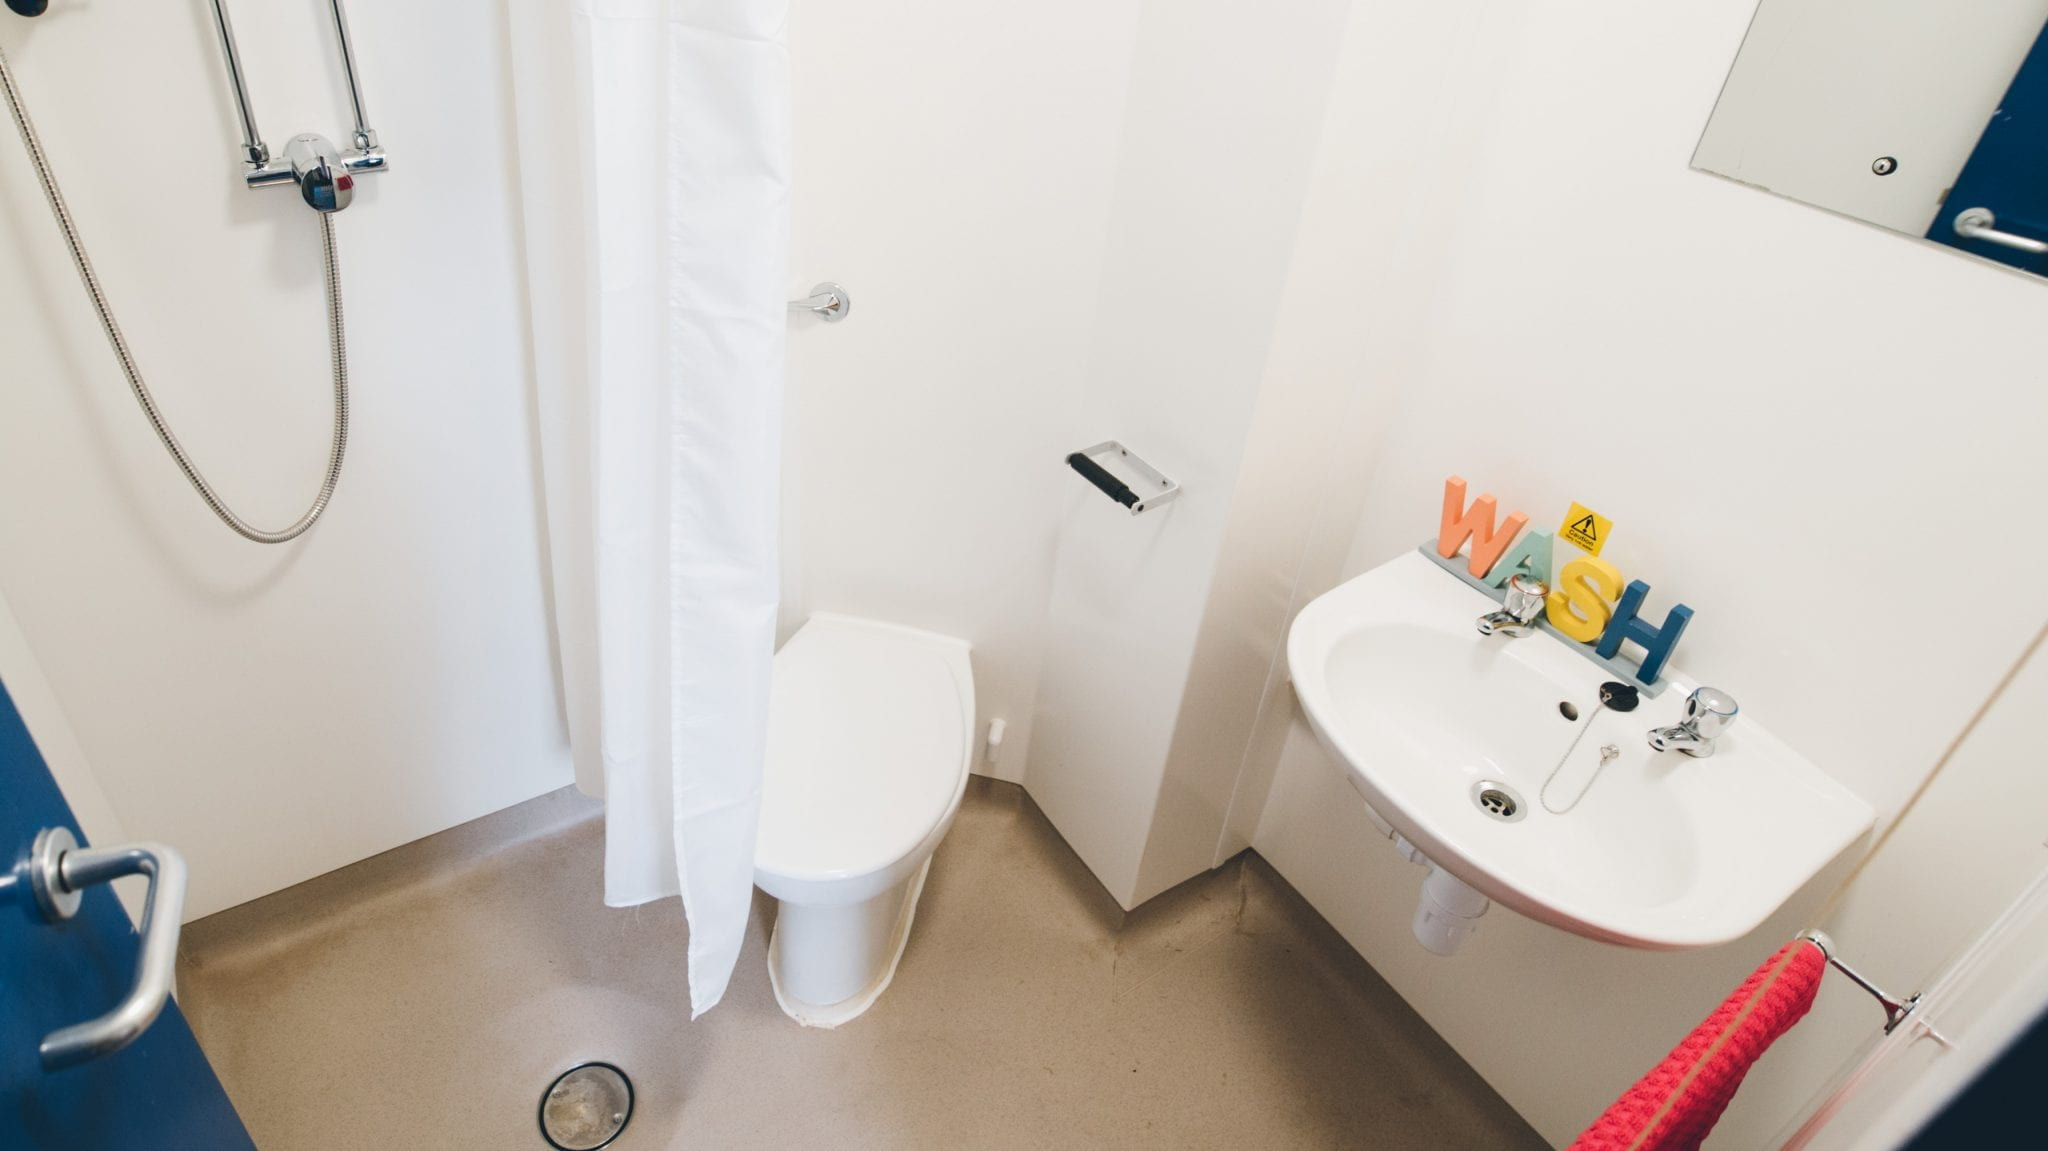 Lincoln Courts en-suite wet room style bathroom including a shower, shower curtain and basin.